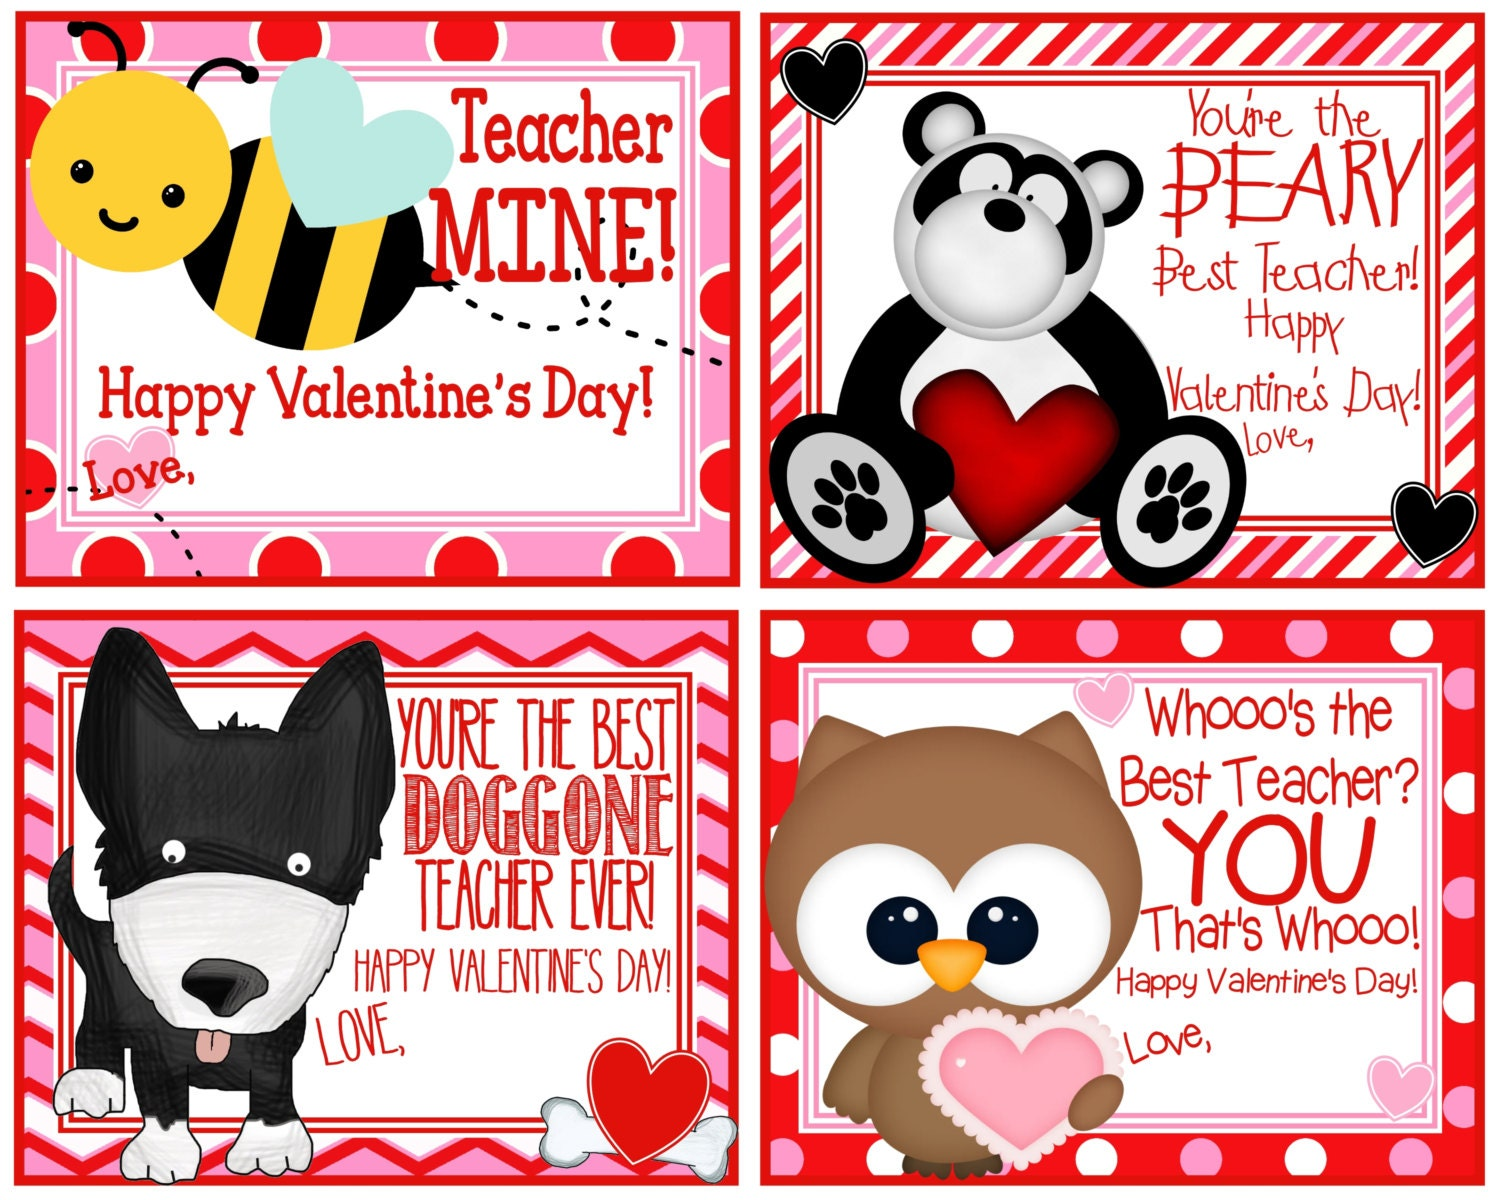 Massif image for printable valentine cards for teacher